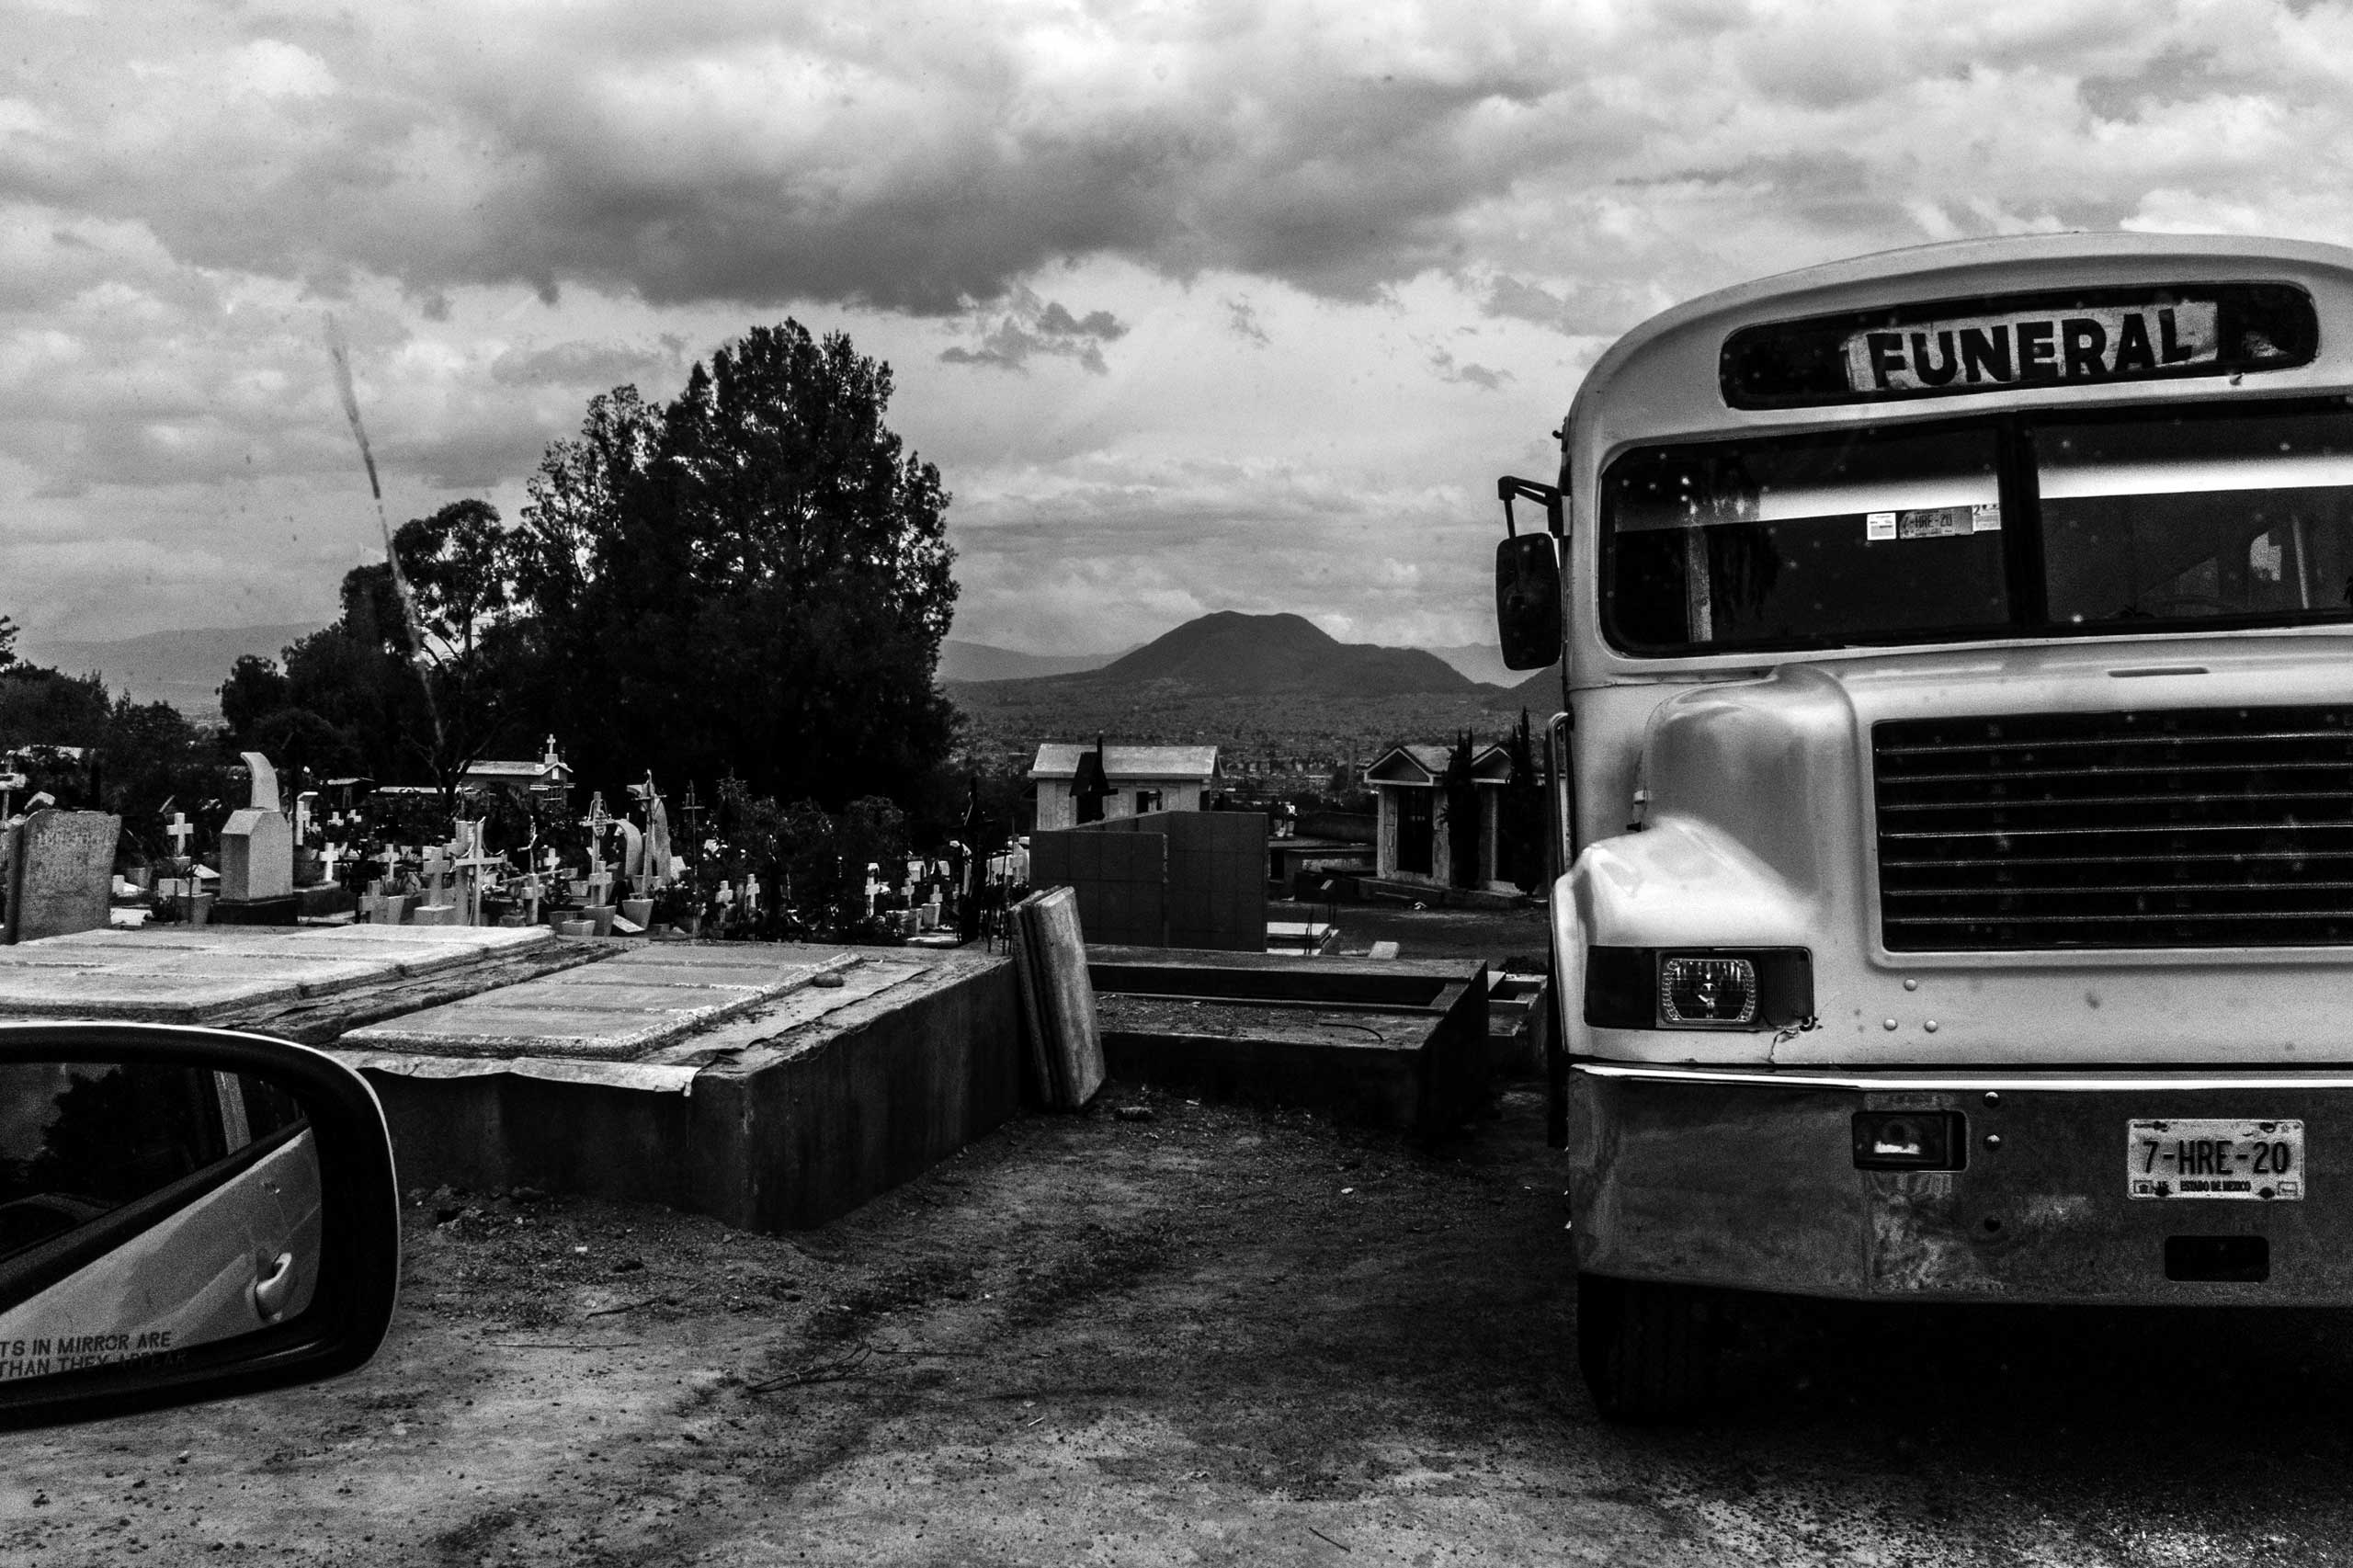 A funeral bus is seen at the San Nicolas Tolentino cemetery. For practical purposes, families and friends usually rent a bus to attend a funeral. March 17, 2016.